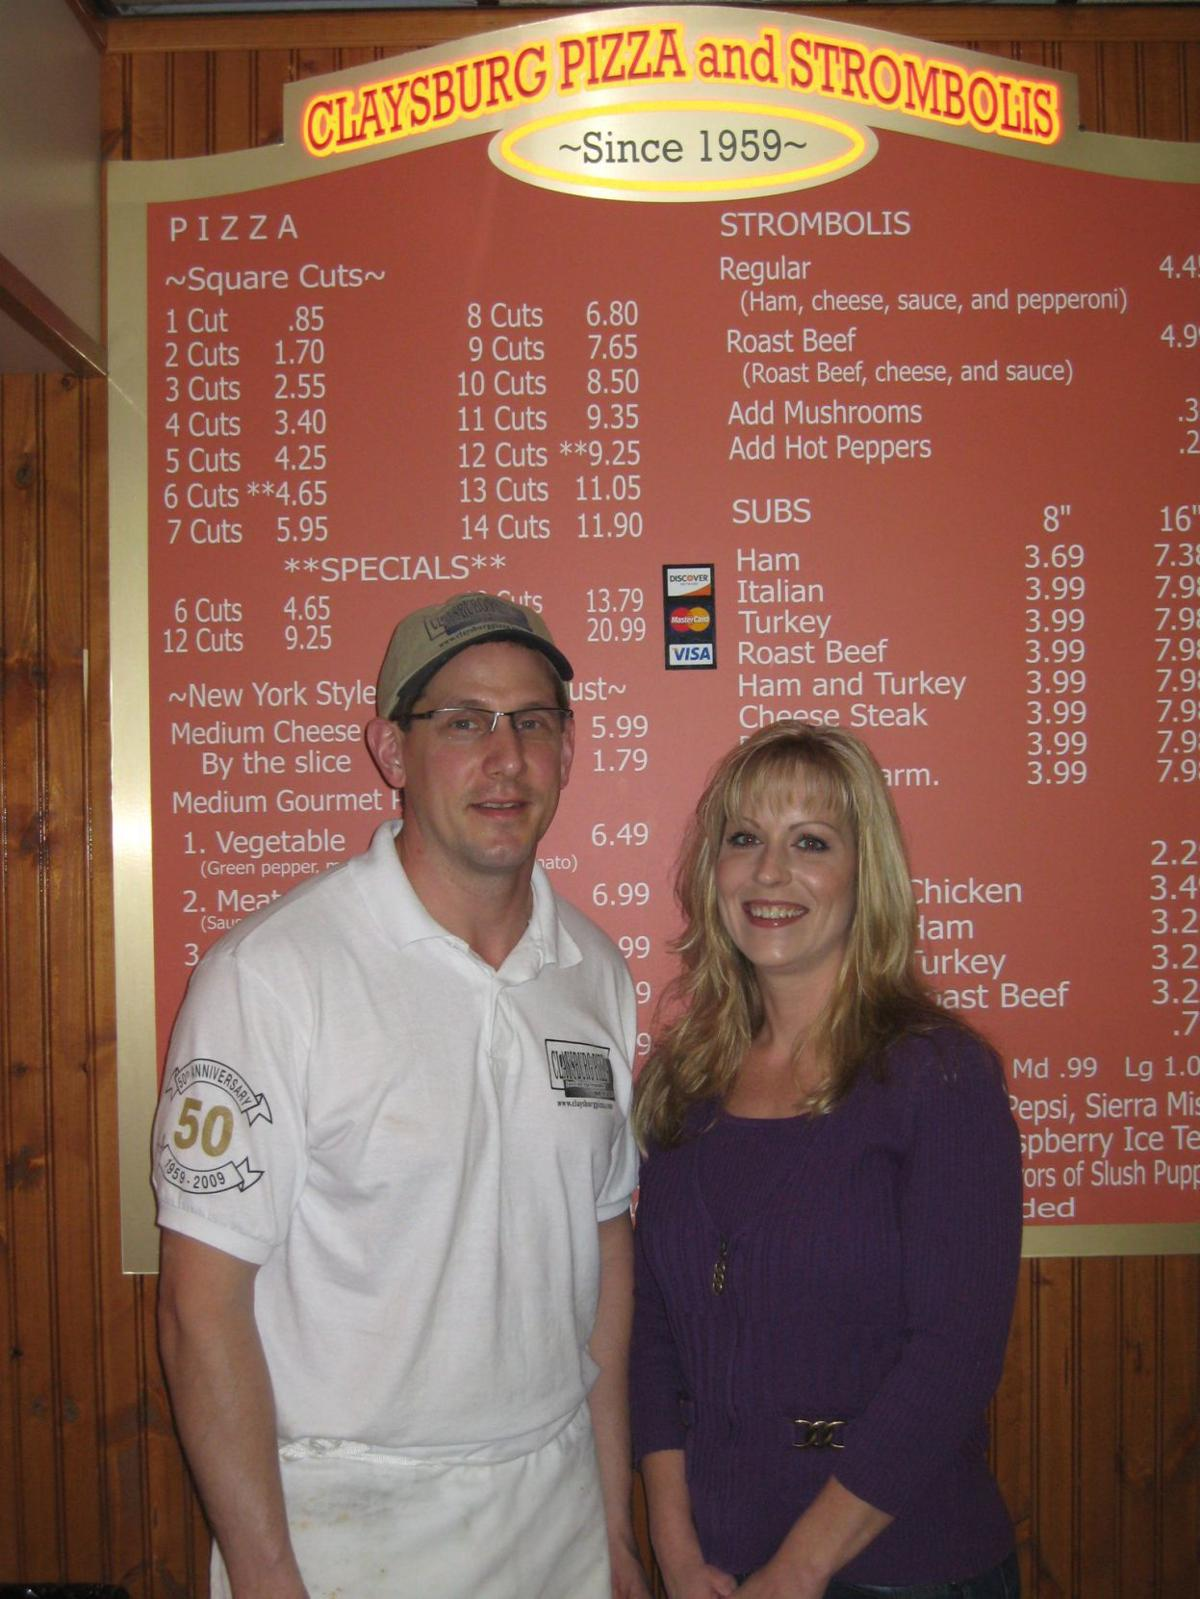 Claysburg Pizza recognized for community contributions